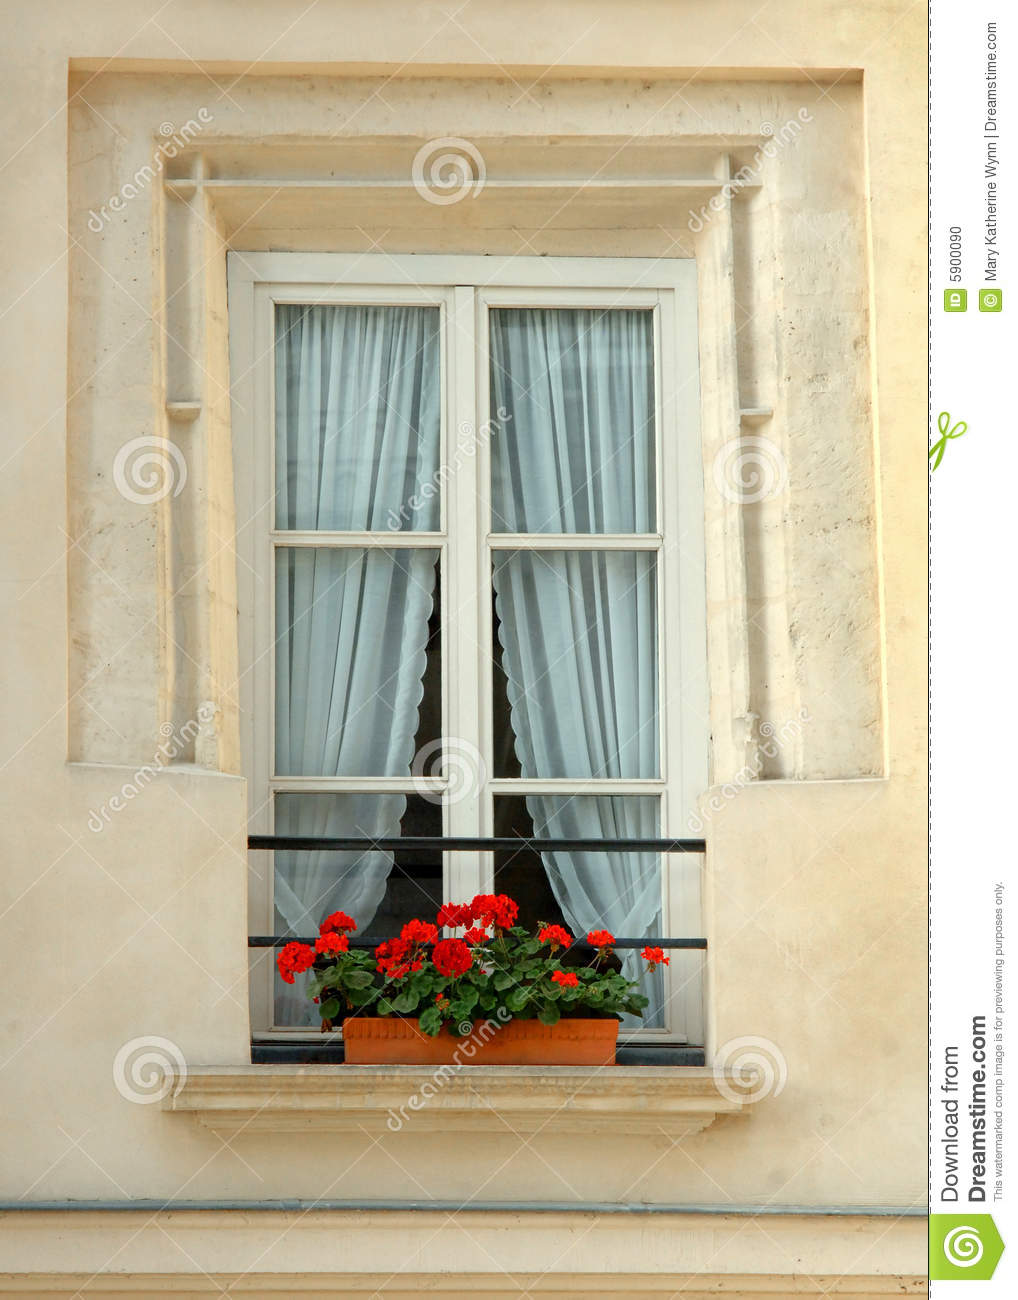 Stock Photo Window Flowers Image5900090 on window air conditioner remote control